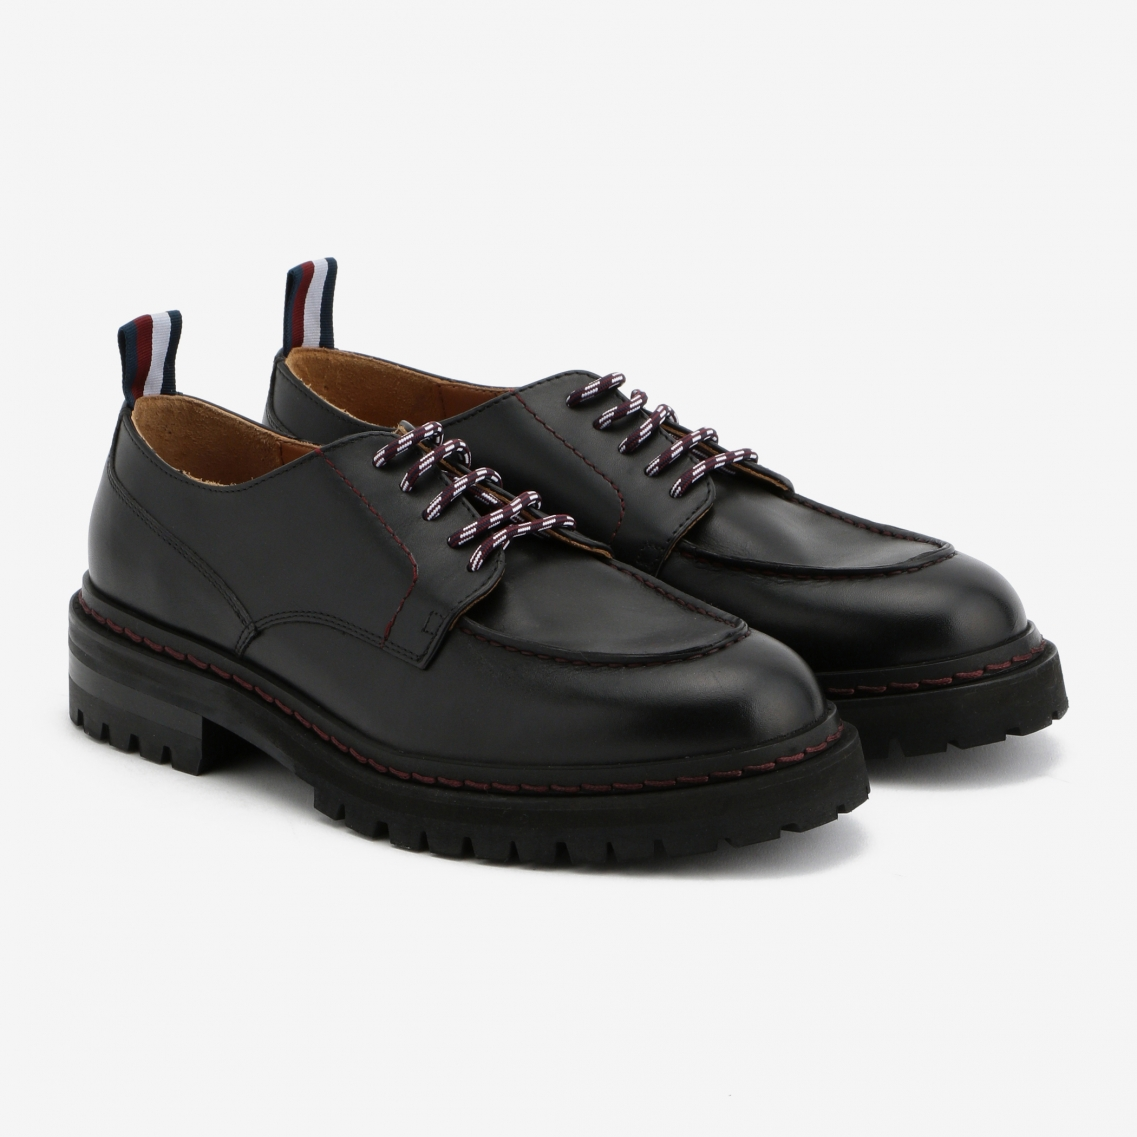 HC CLEATED SOLE LACE-UP SHOES